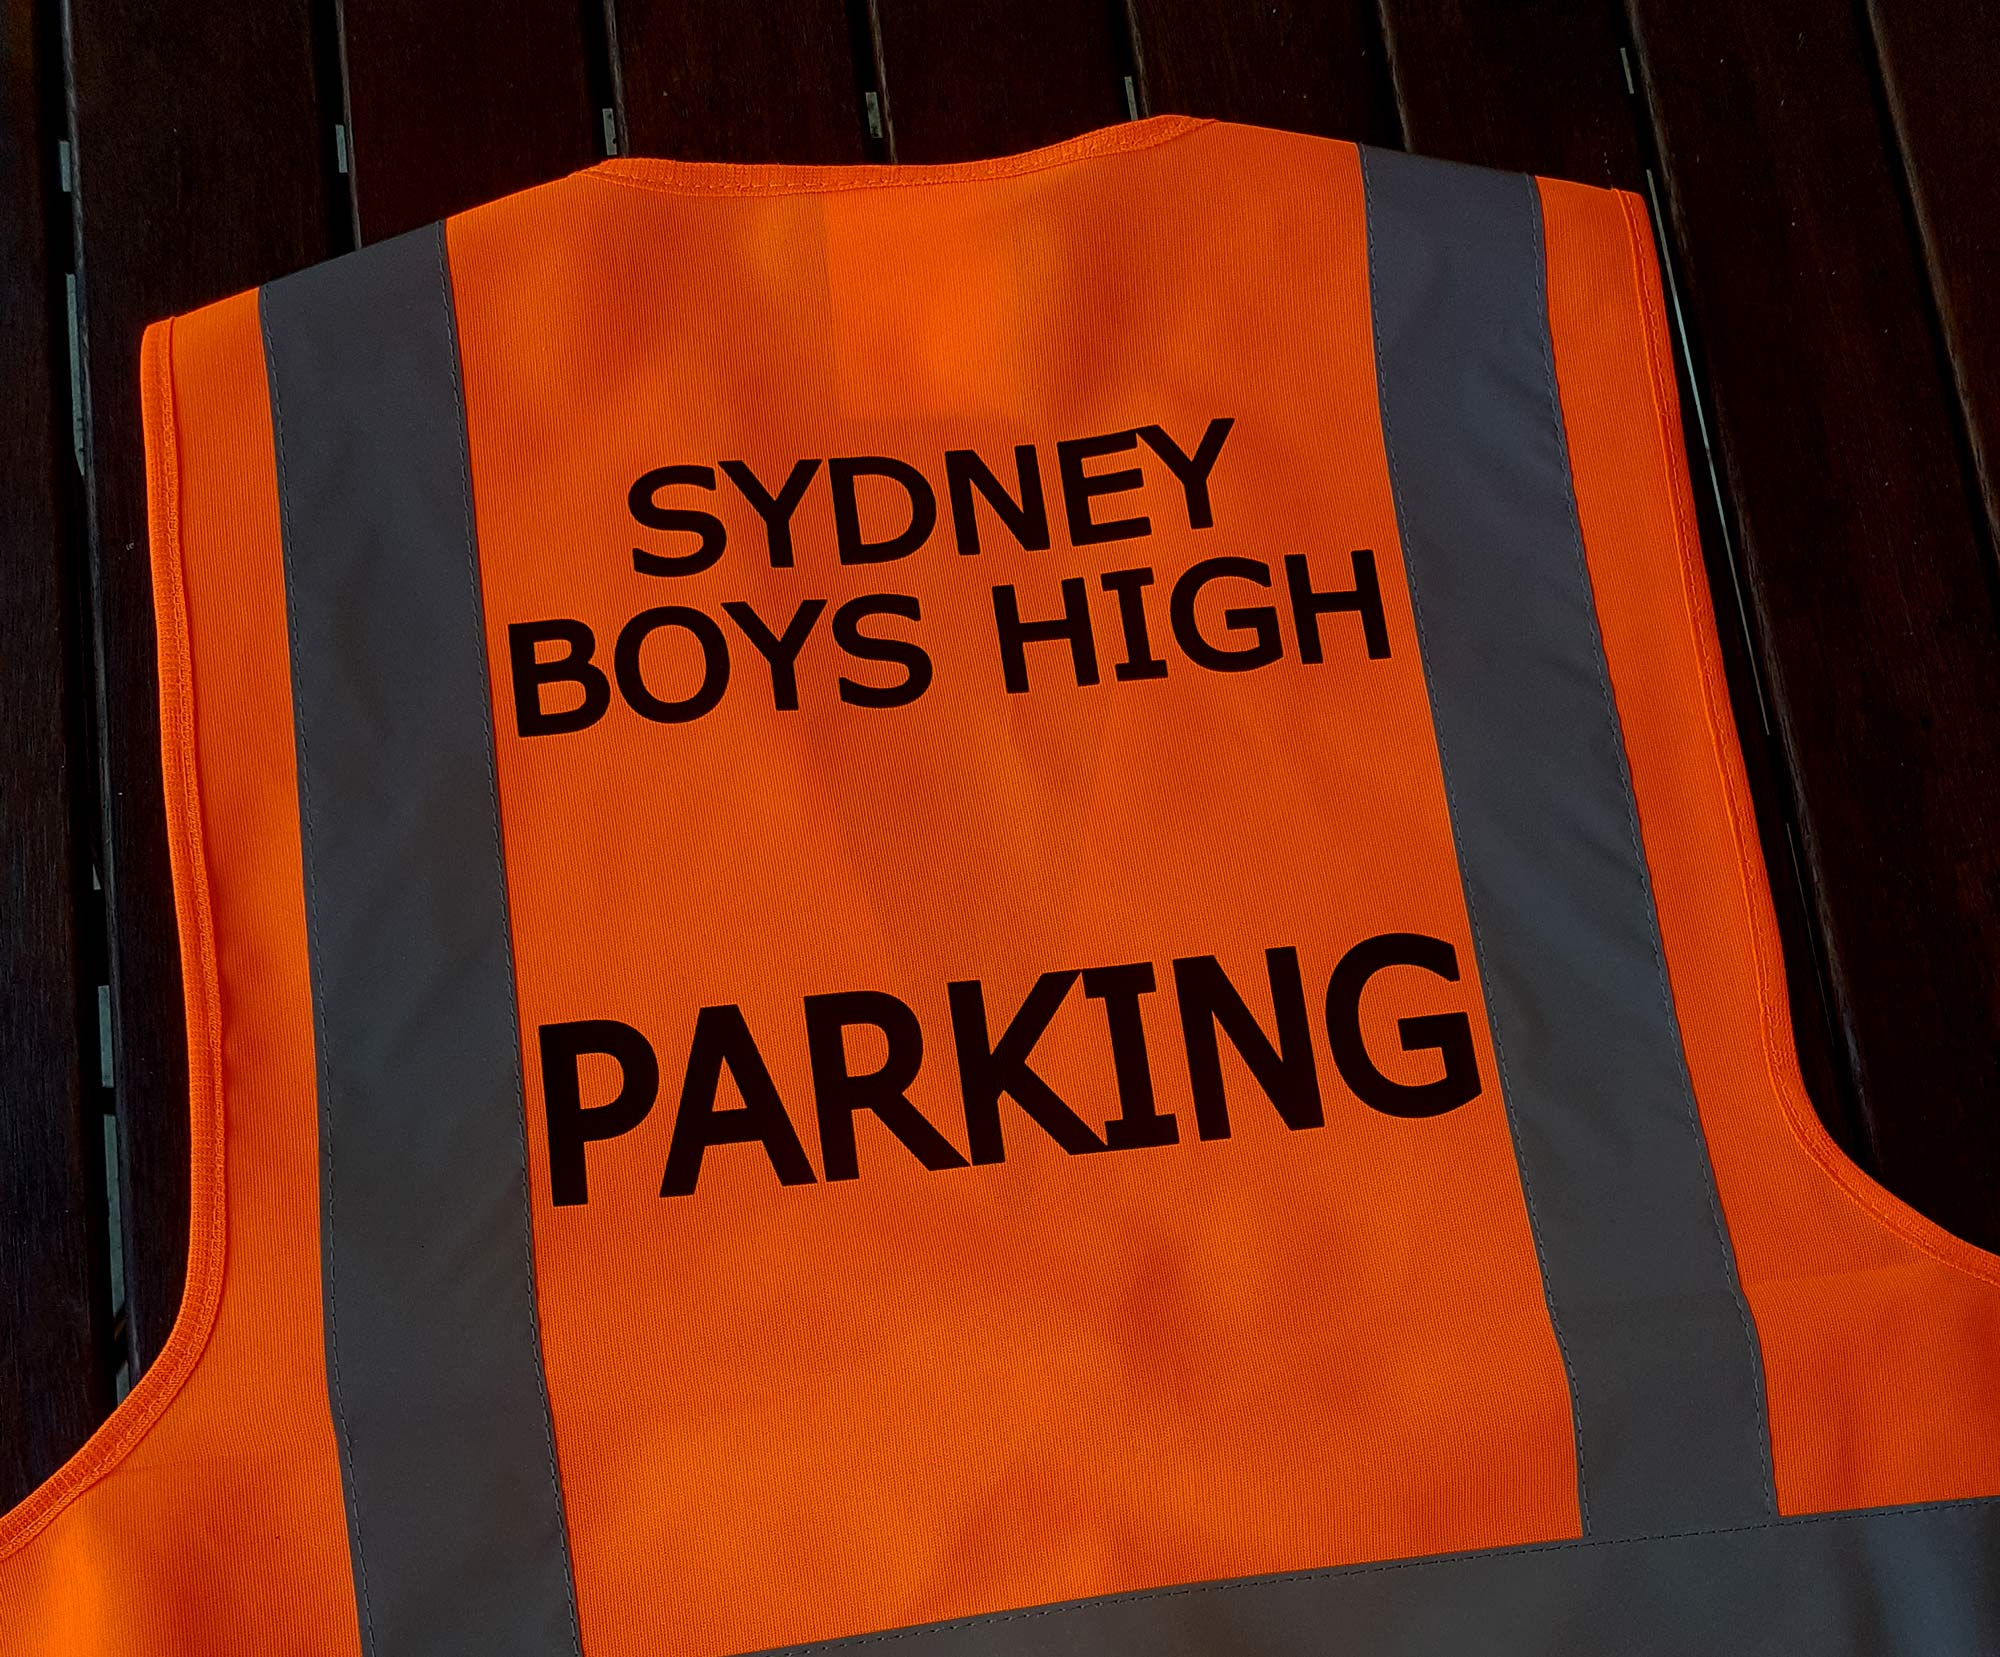 parking text on hi-vis